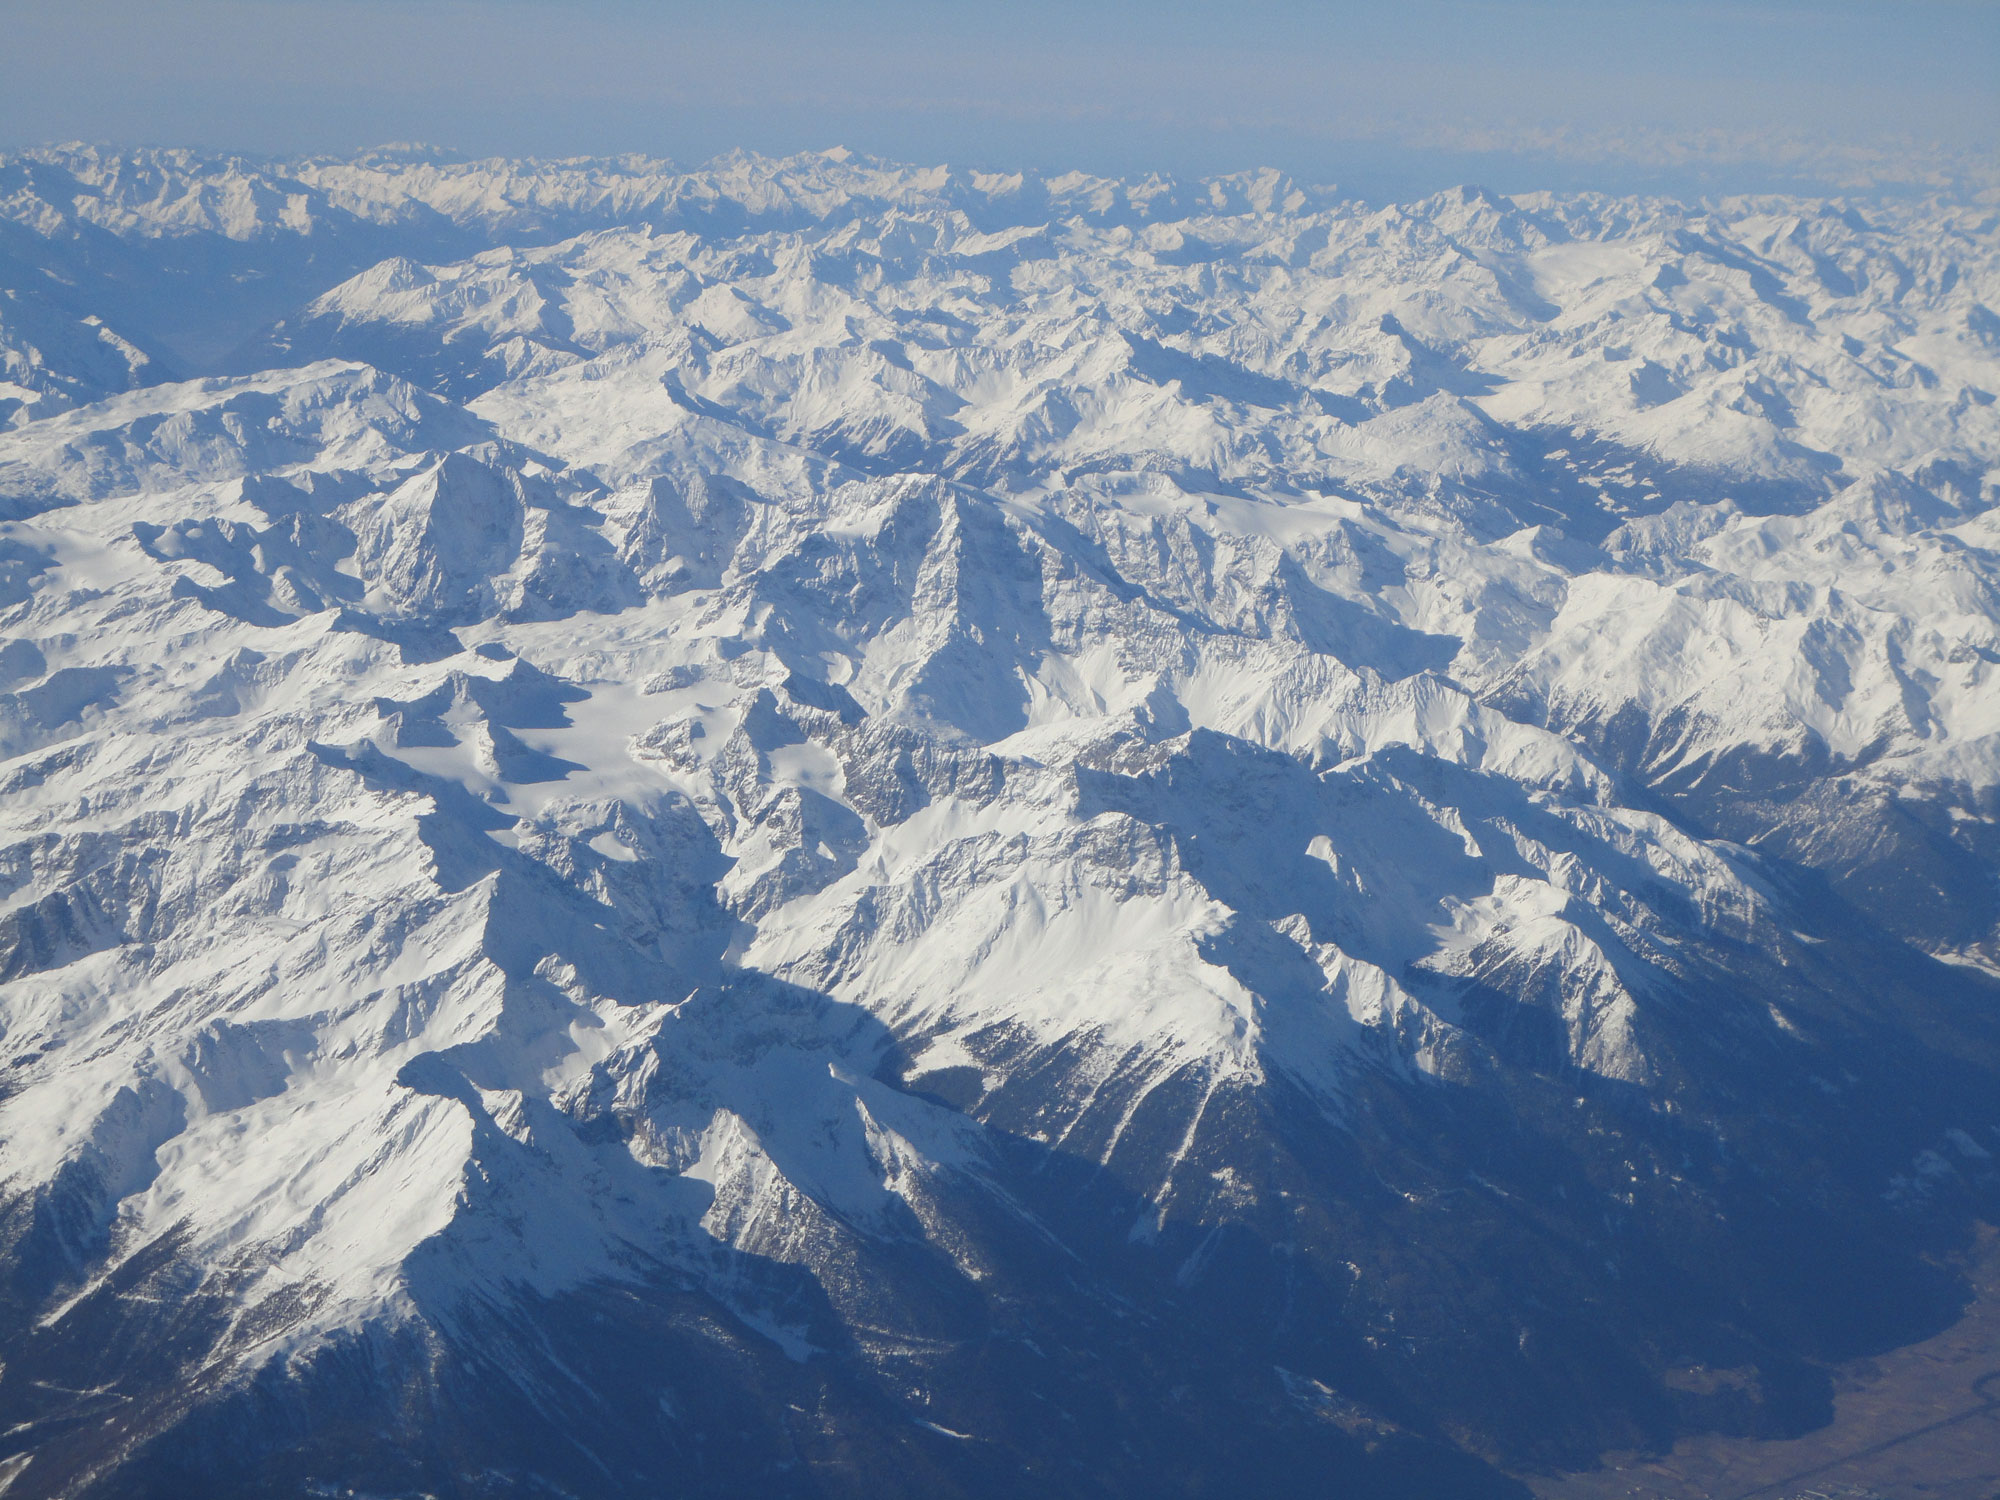 Travel Medicine - View of the Swiss Alps from my airplane window.